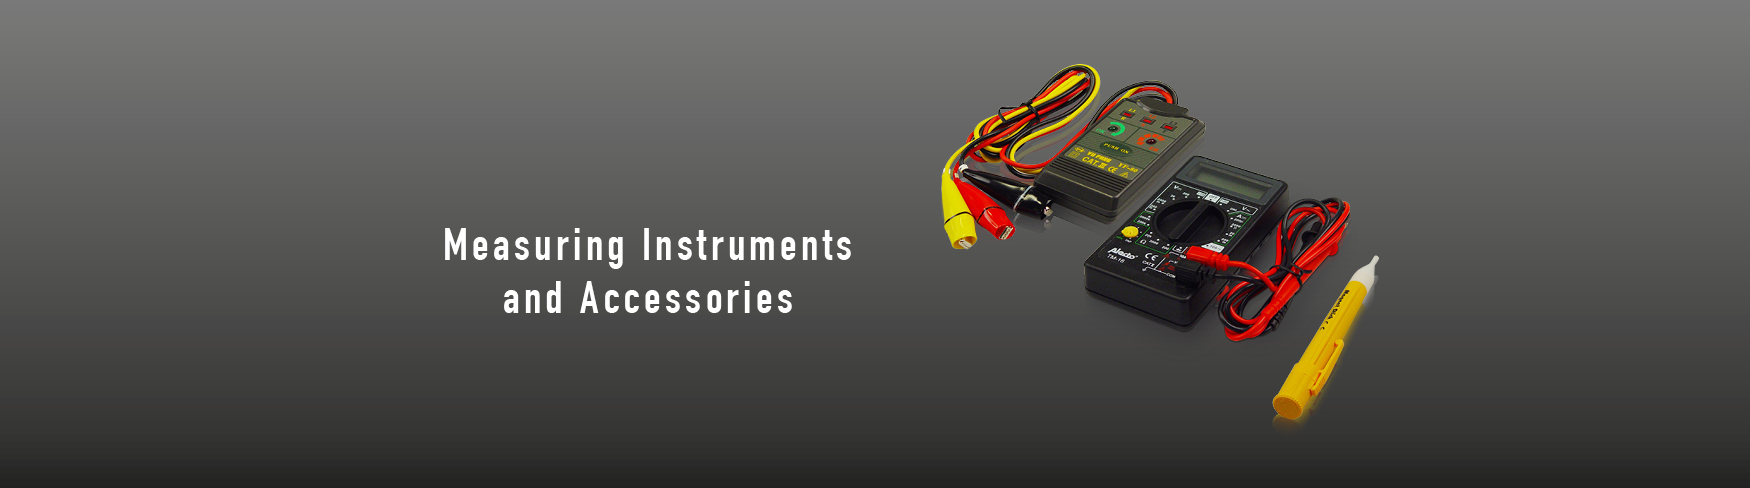 Measuring Instruments and Accessories